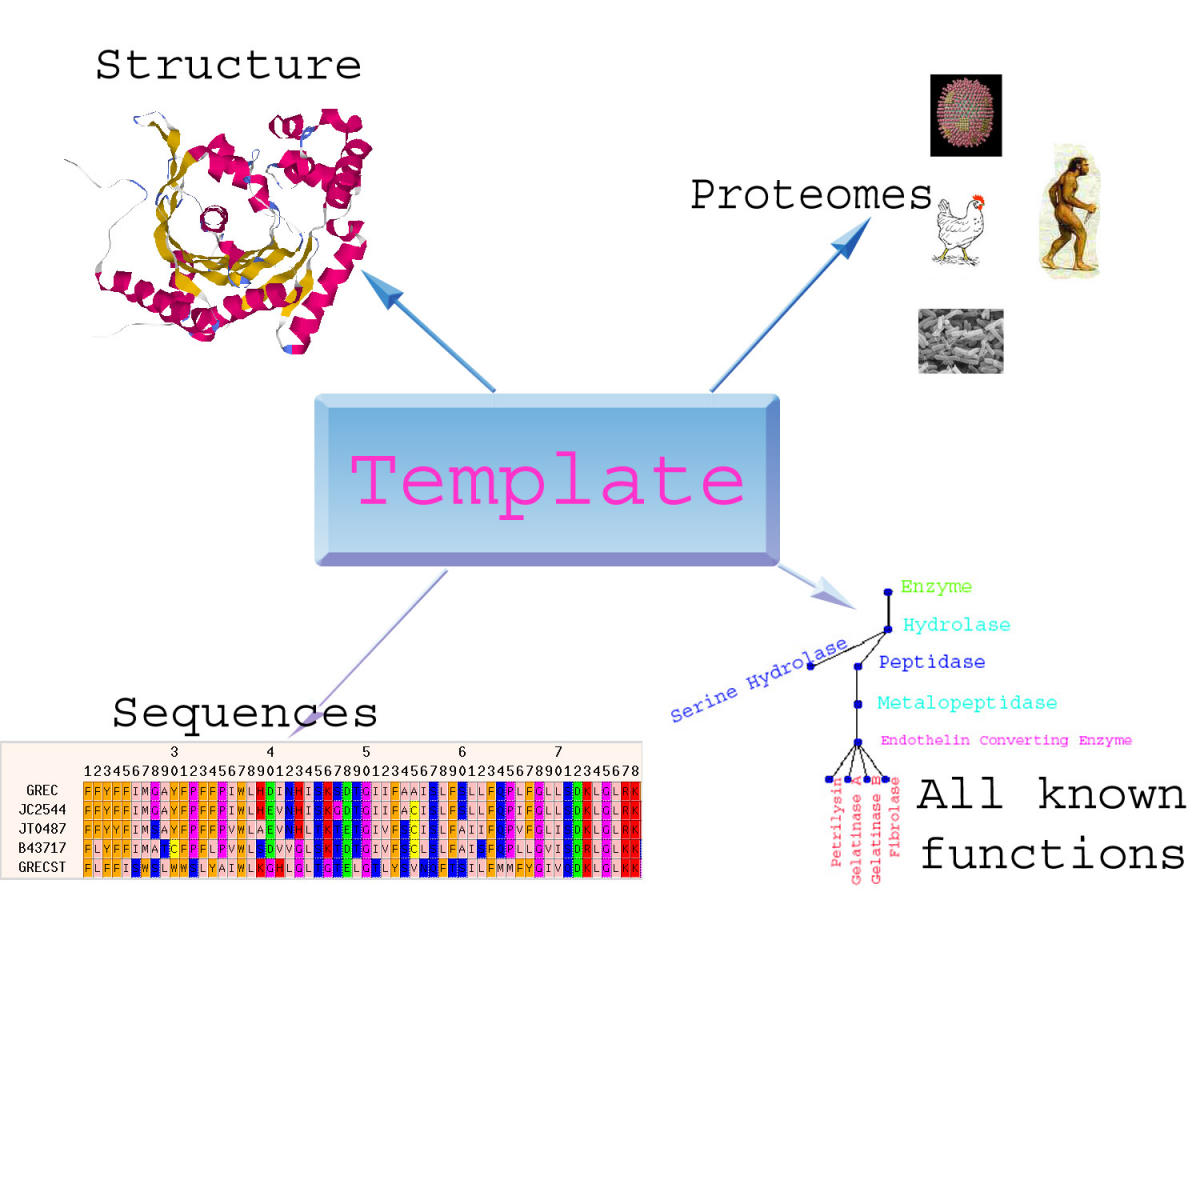 https://static-content.springer.com/image/art%3A10.1186%2F1471-2105-4-34/MediaObjects/12859_2003_Article_84_Fig1_HTML.jpg